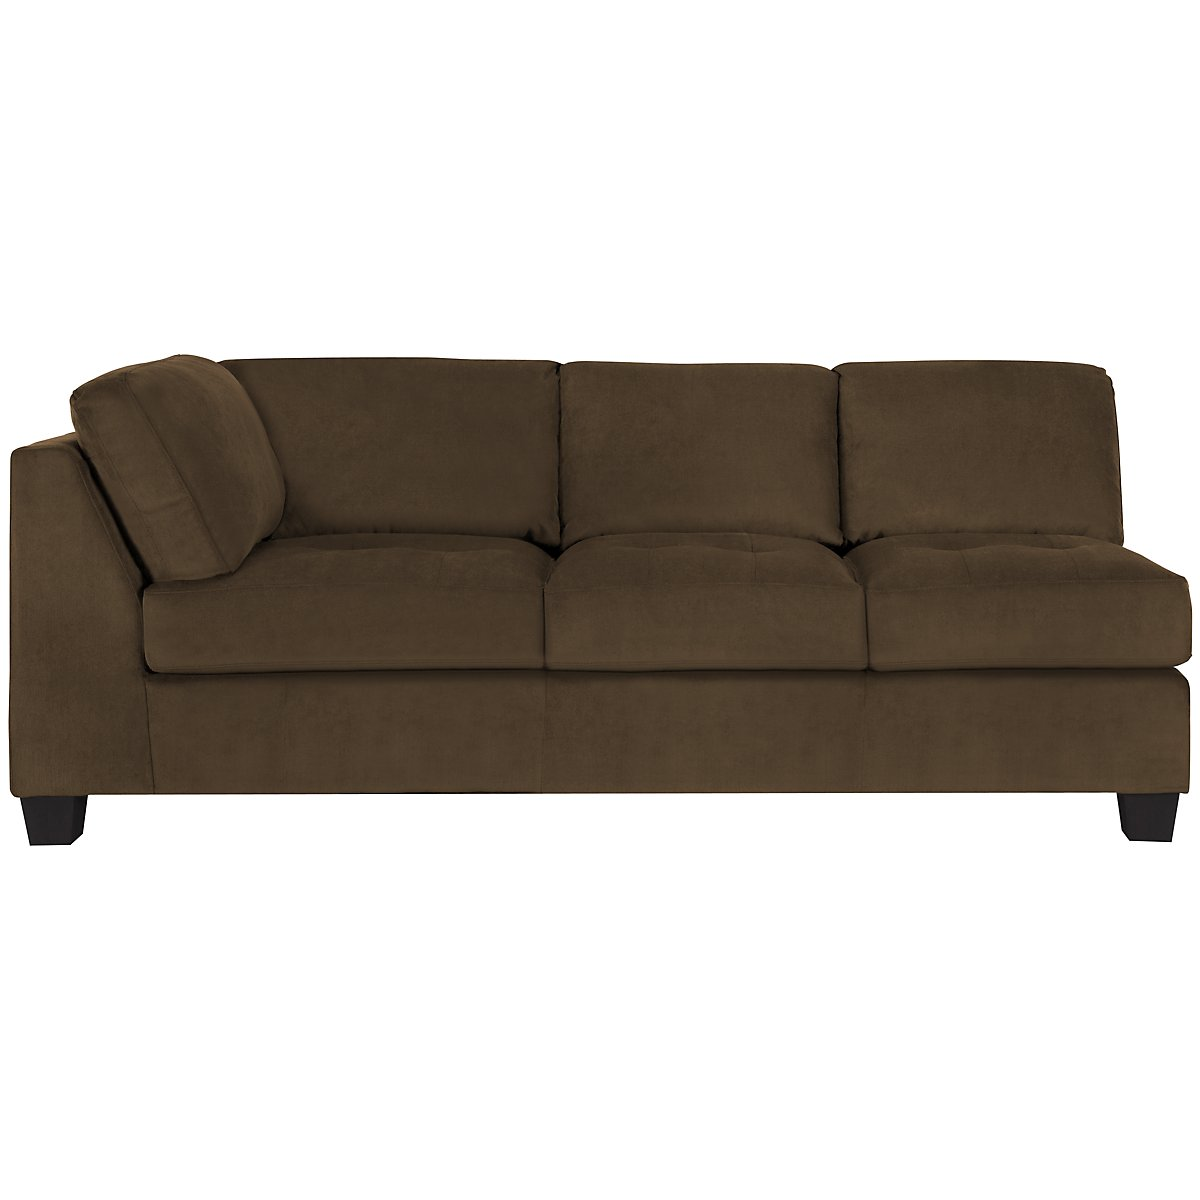 City furniture mercer2 dk brown microfiber right chaise for Brown sectional sofa with chaise